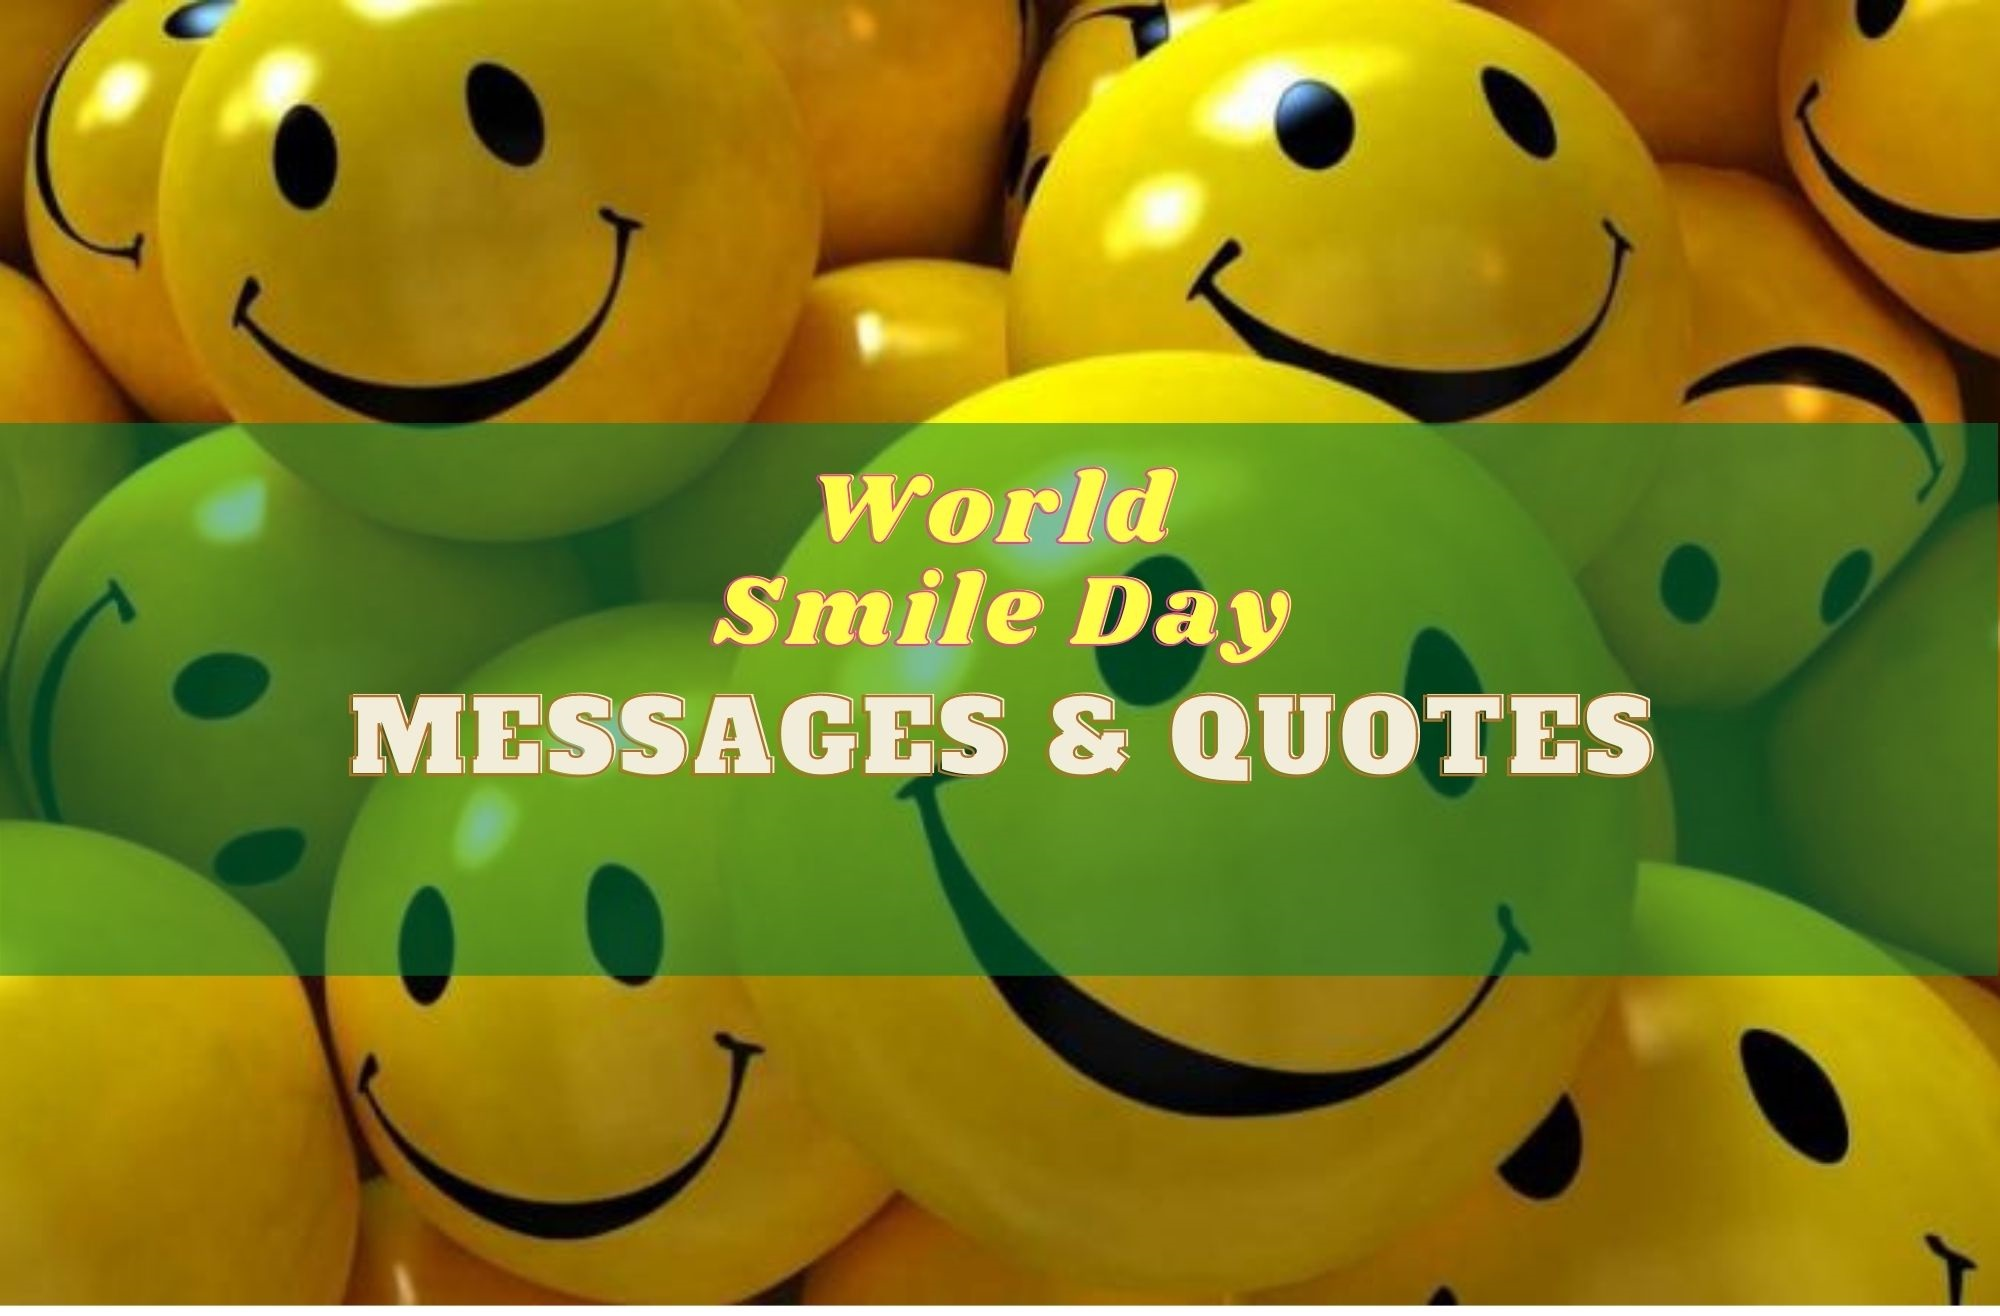 World Smile Day Messages & Quotes